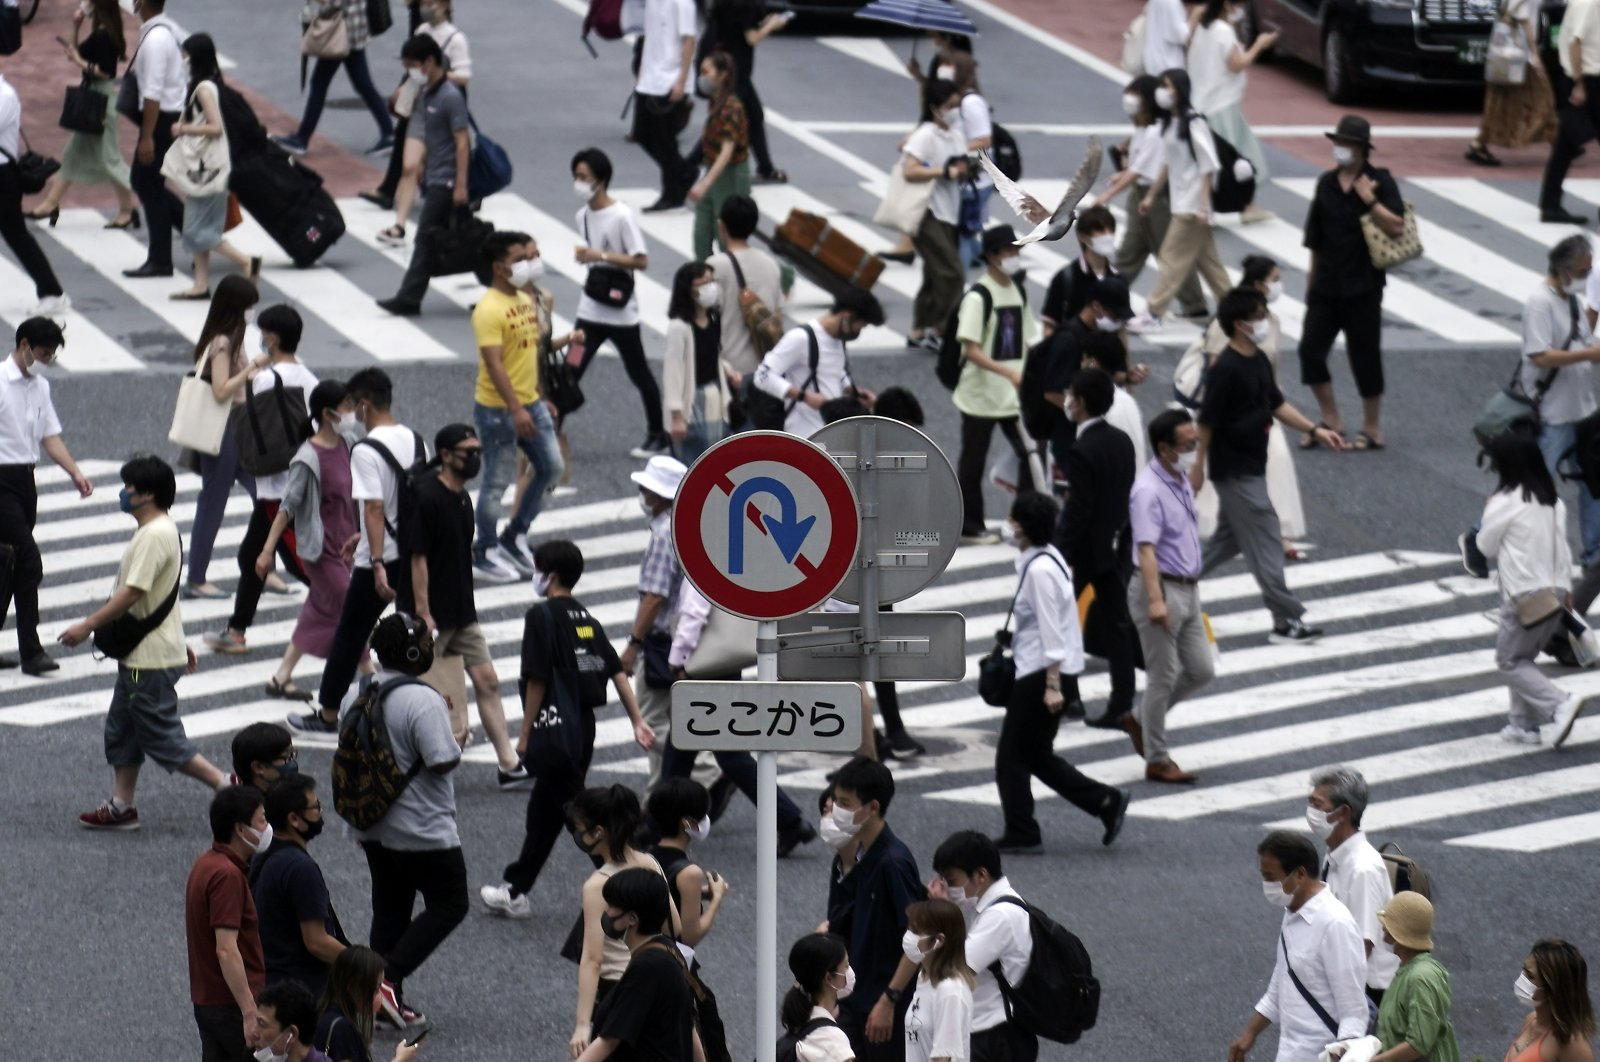 Near a No U Turn roads sign, people wearing masks against the spread of the new coronavirus walk at Shibuya pedestrian crossing in Tokyo Tuesday, July 21, 2020. (AP Photo)